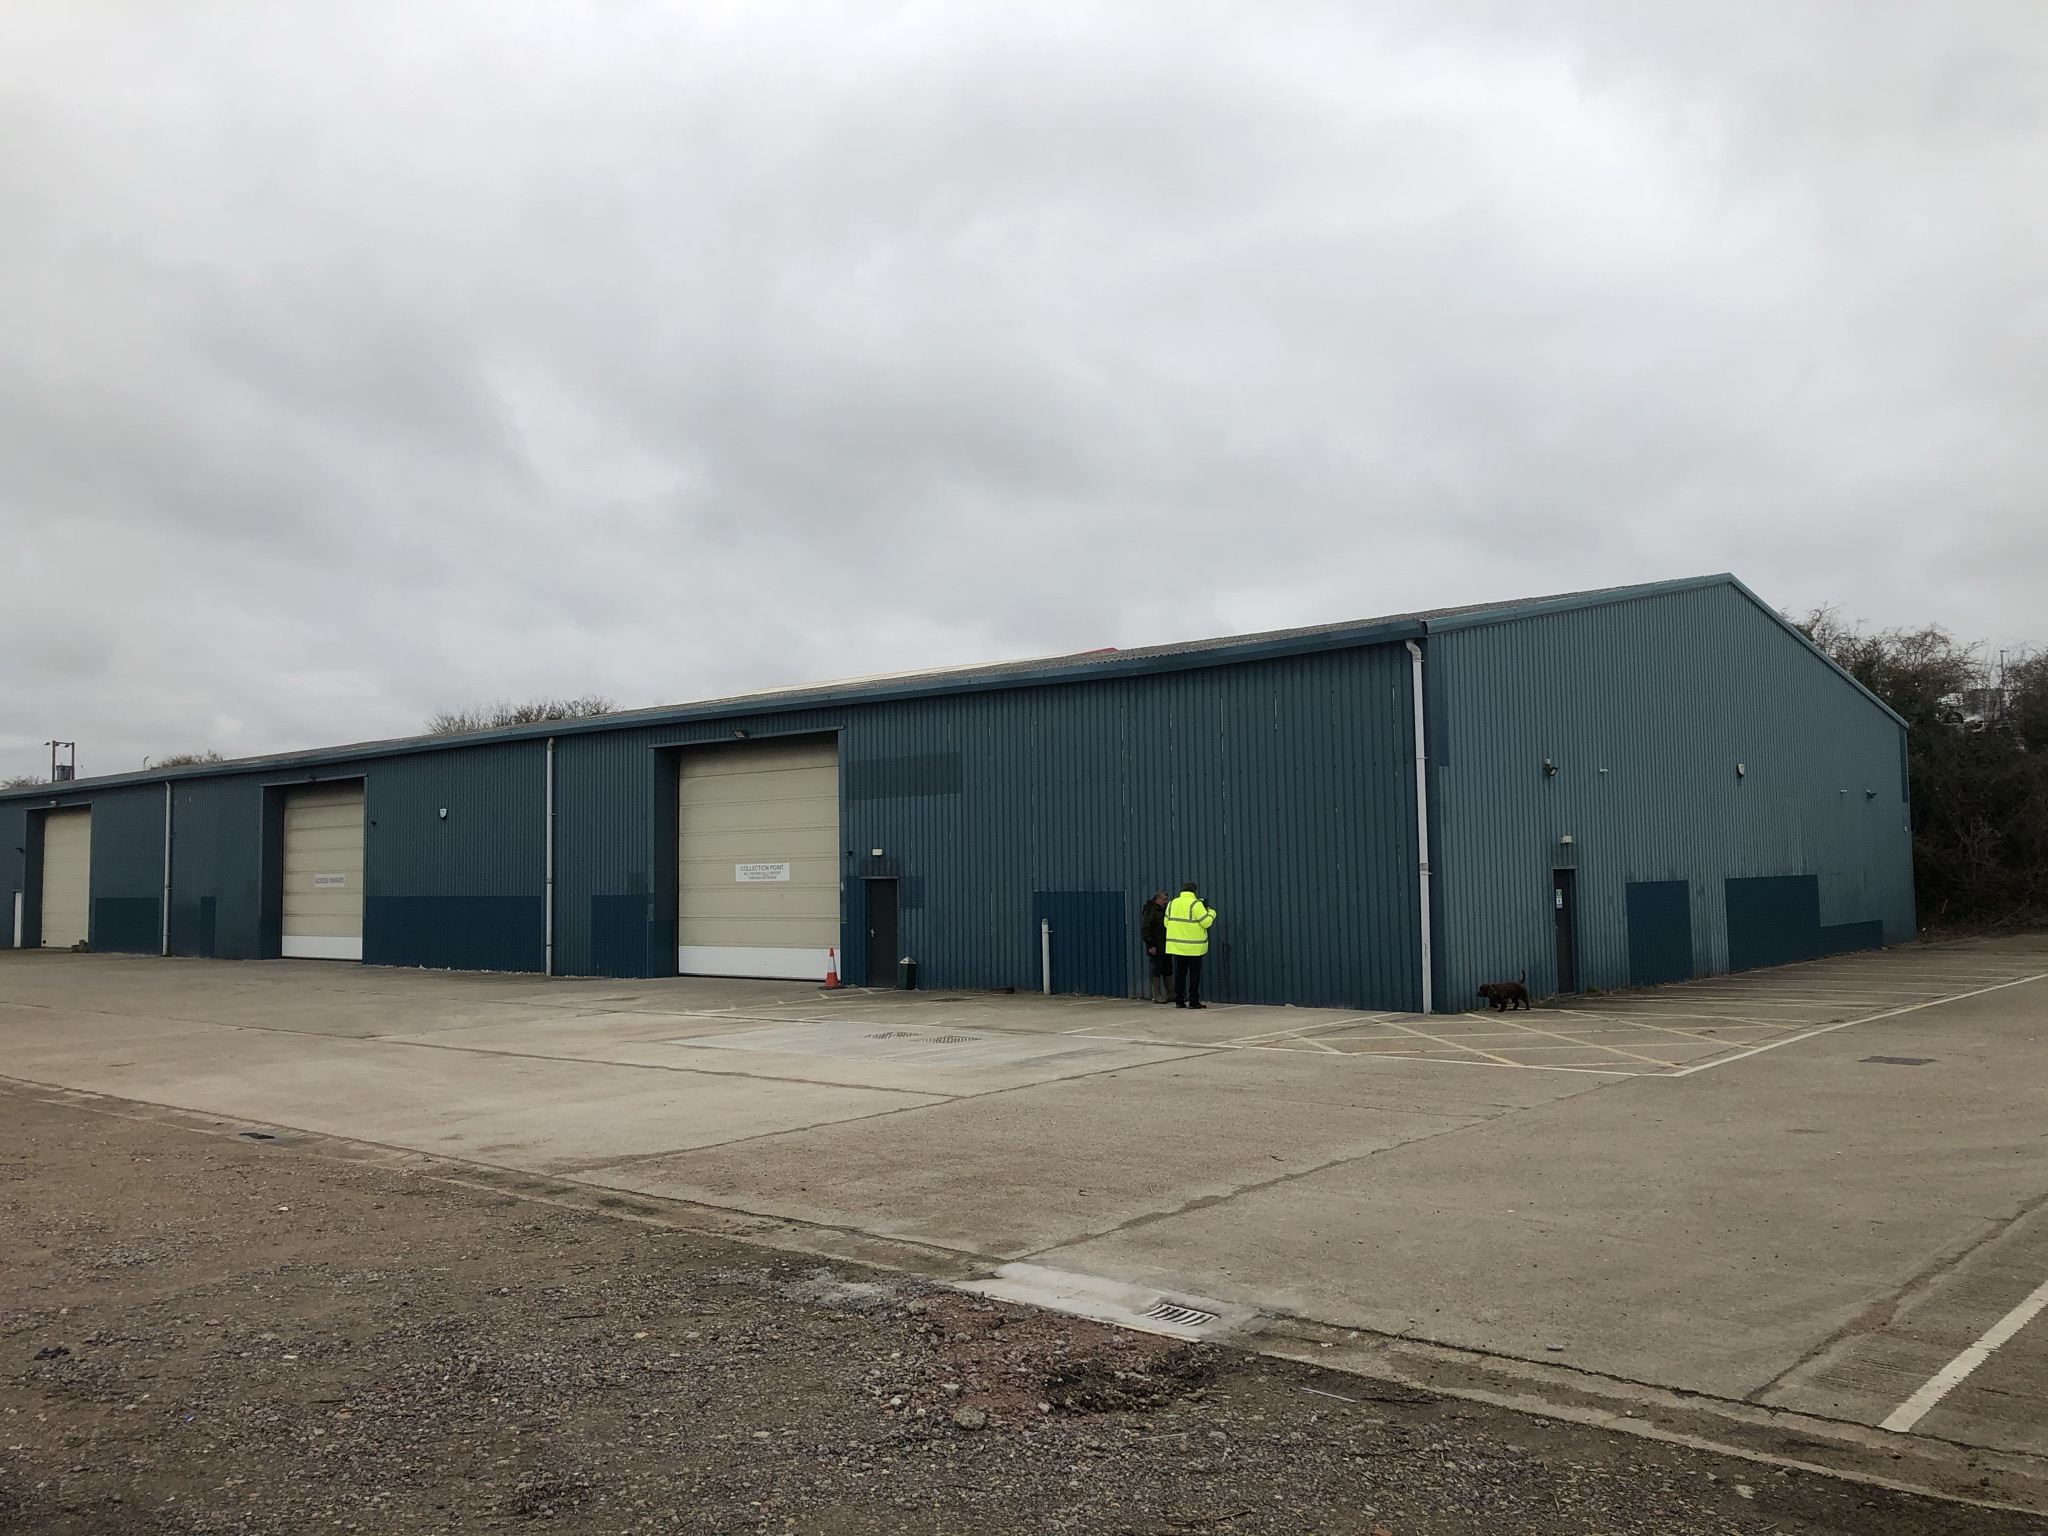 0 bed Warehouse for rent in Ramsgate. From Azure Property Consultants